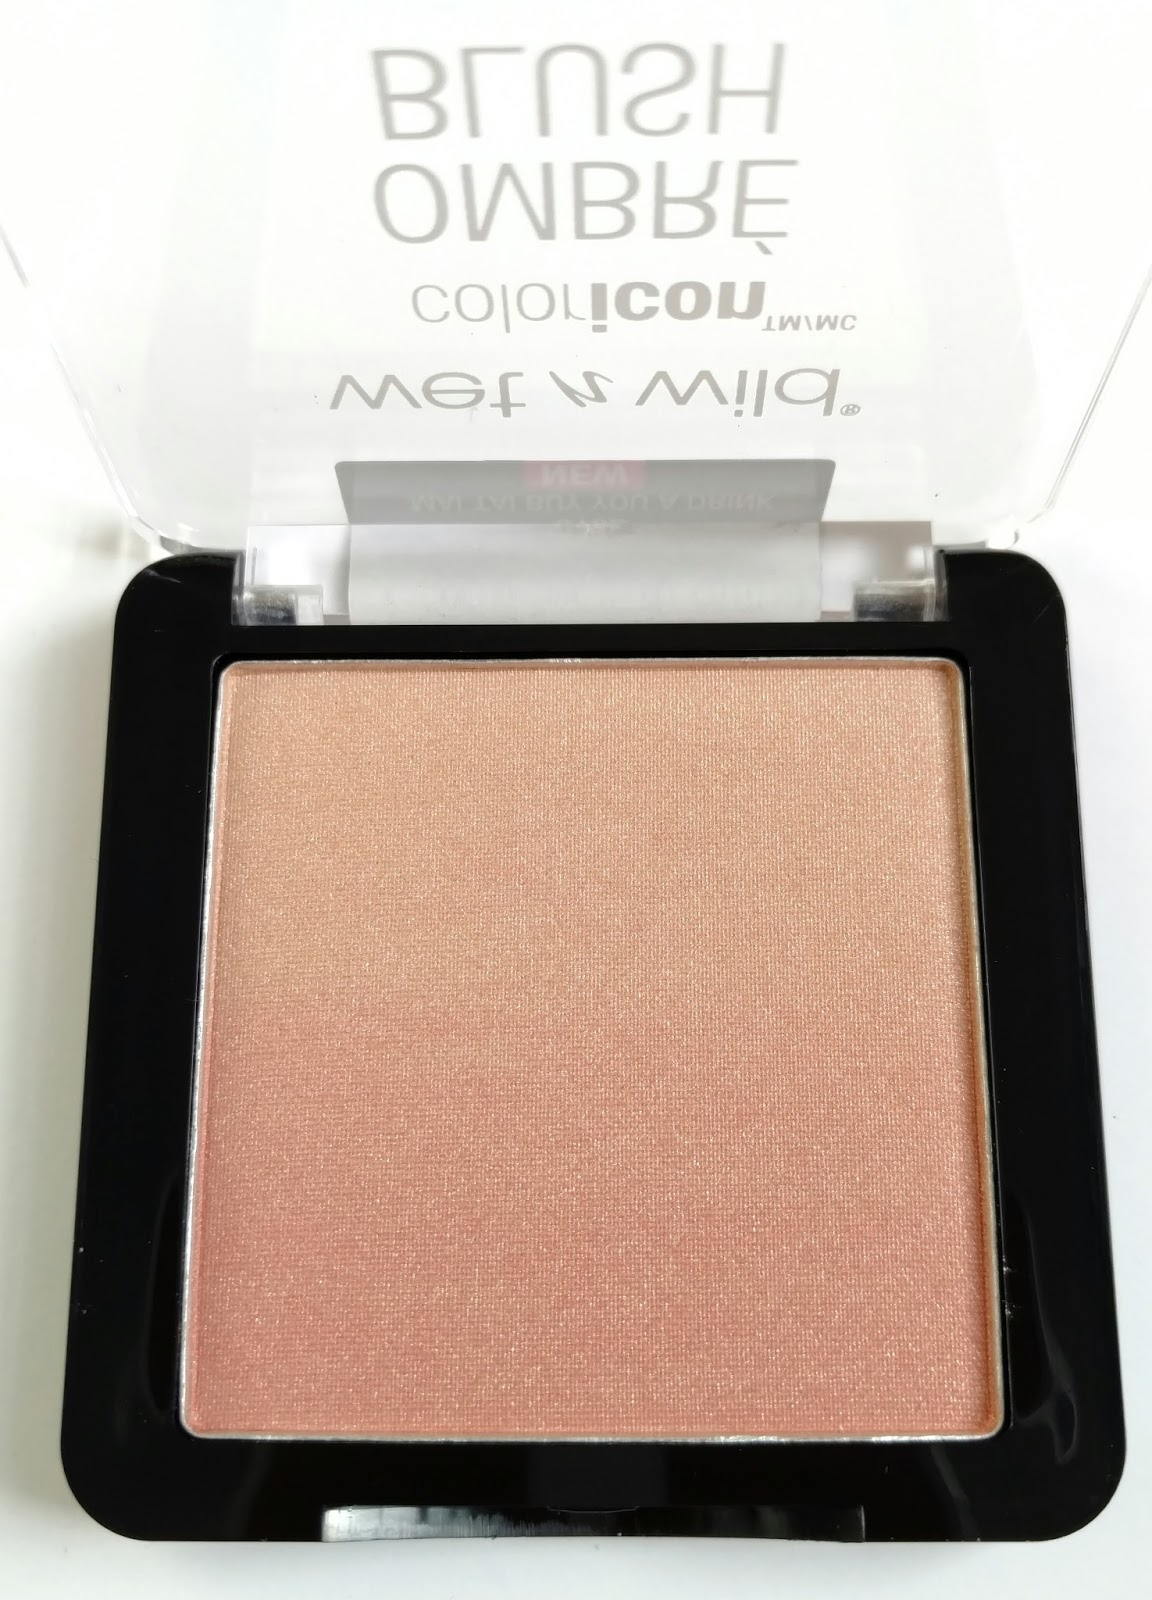 Wet n Wild Ombre Blush mai tai buy you a drink